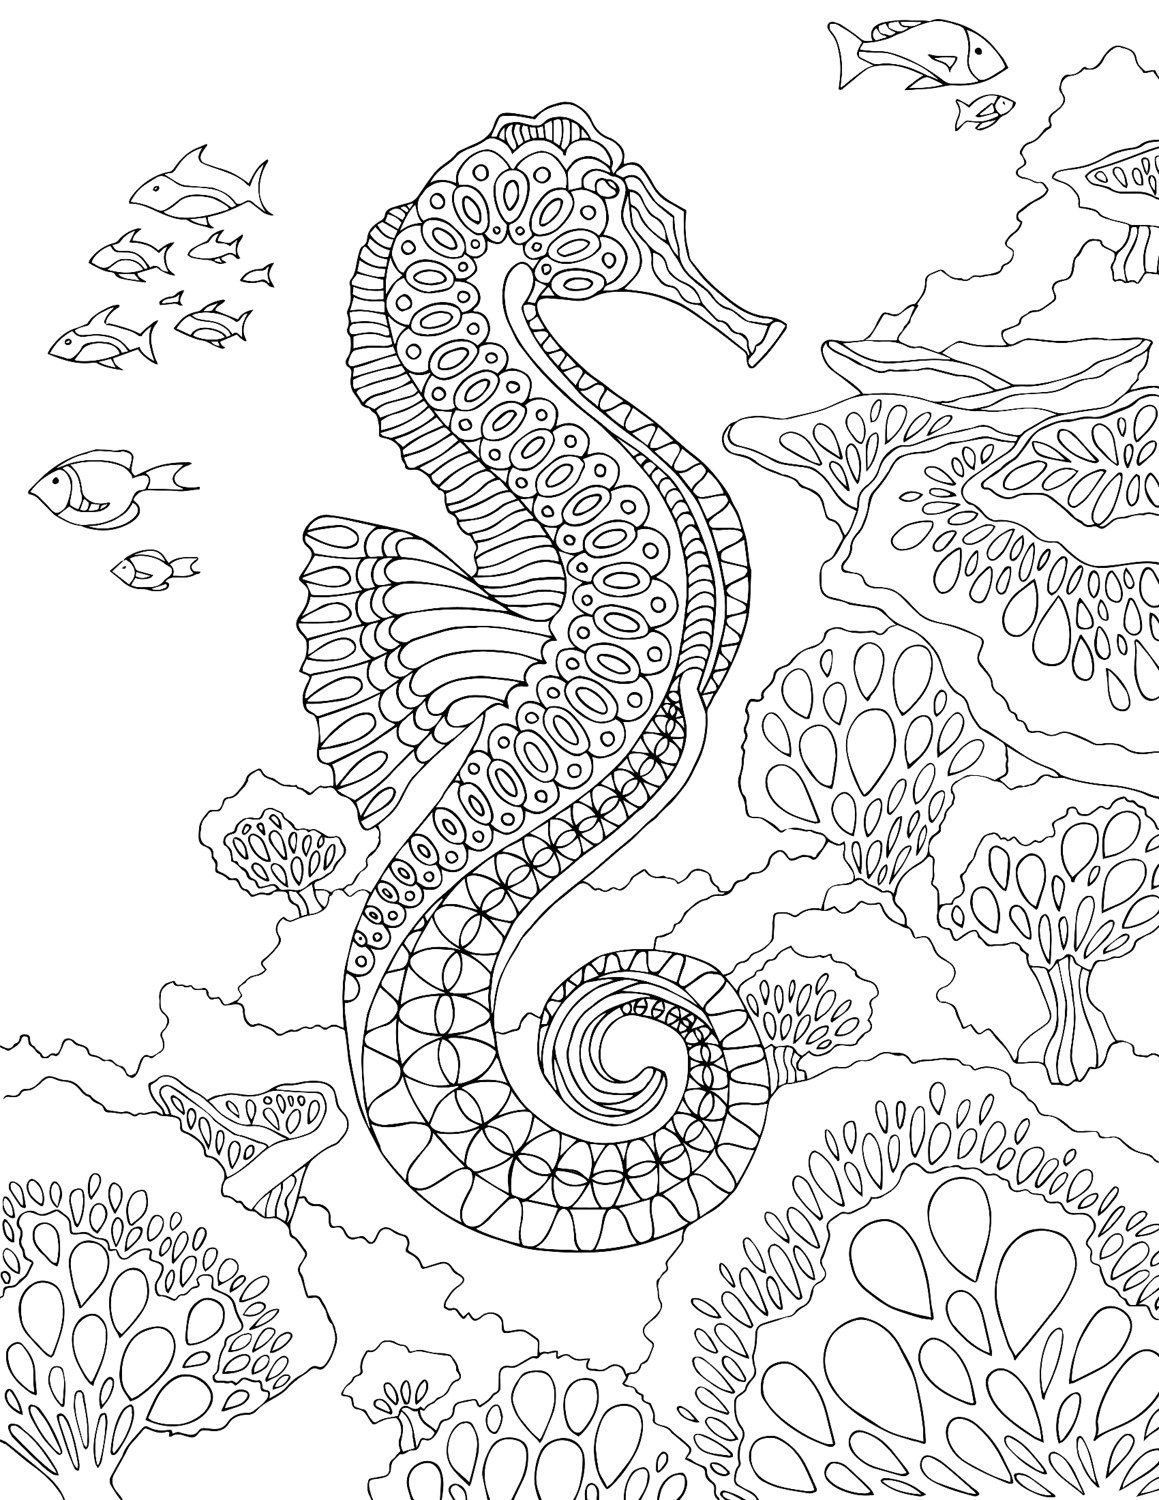 Seahorse PDF Zentangle Coloring Page Therapy Coloring